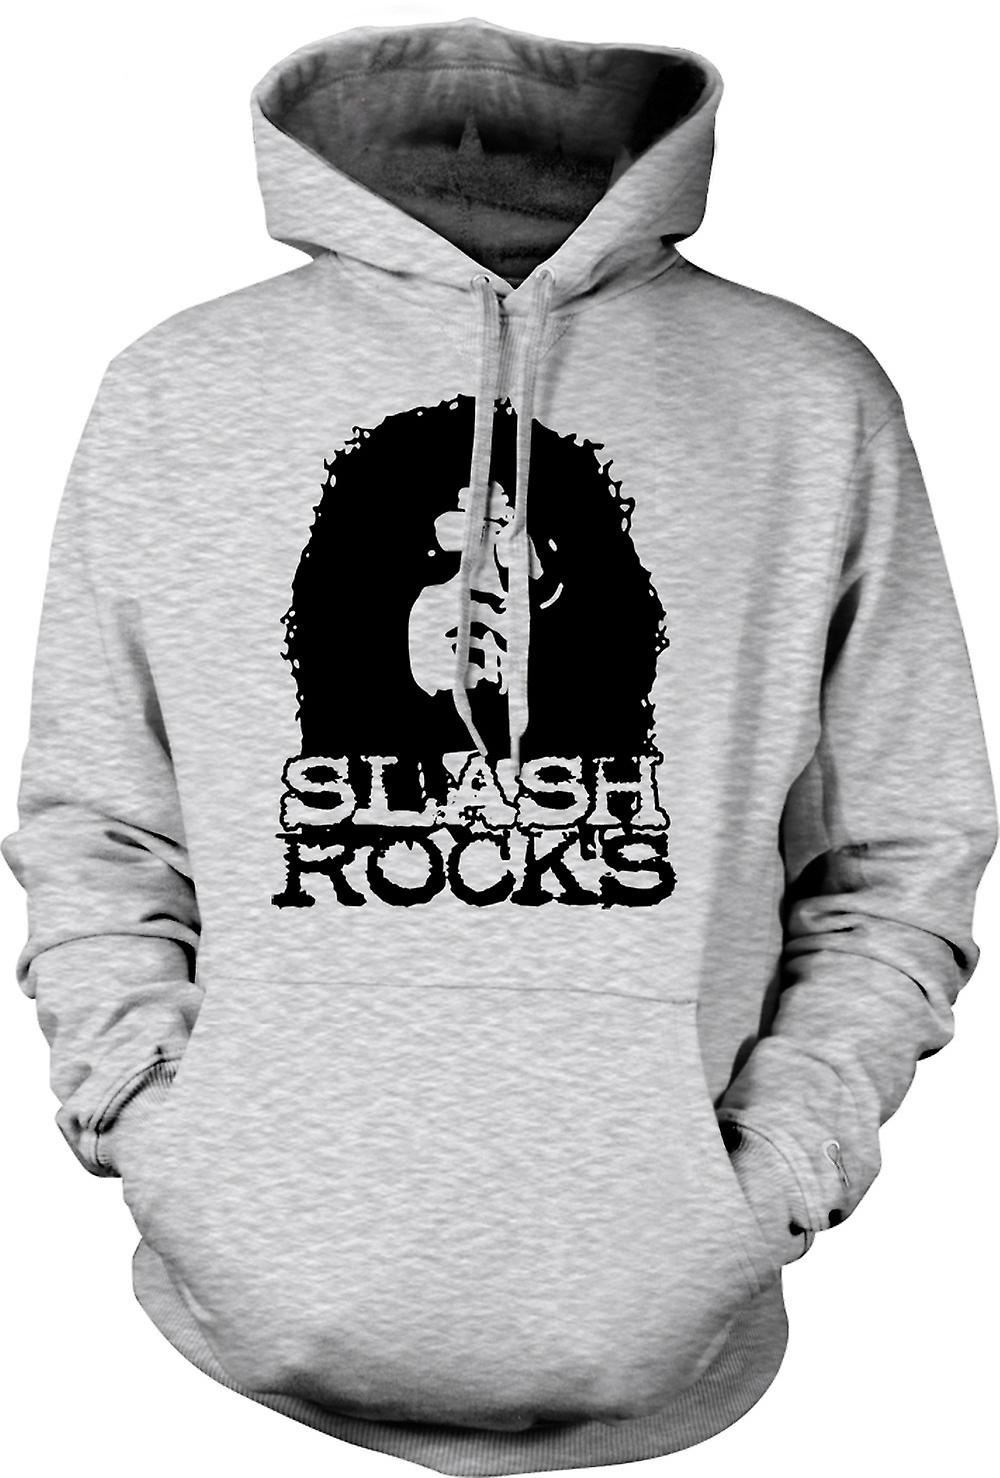 Mens Hoodie - Slash Guitar Rock - Guns n Roses